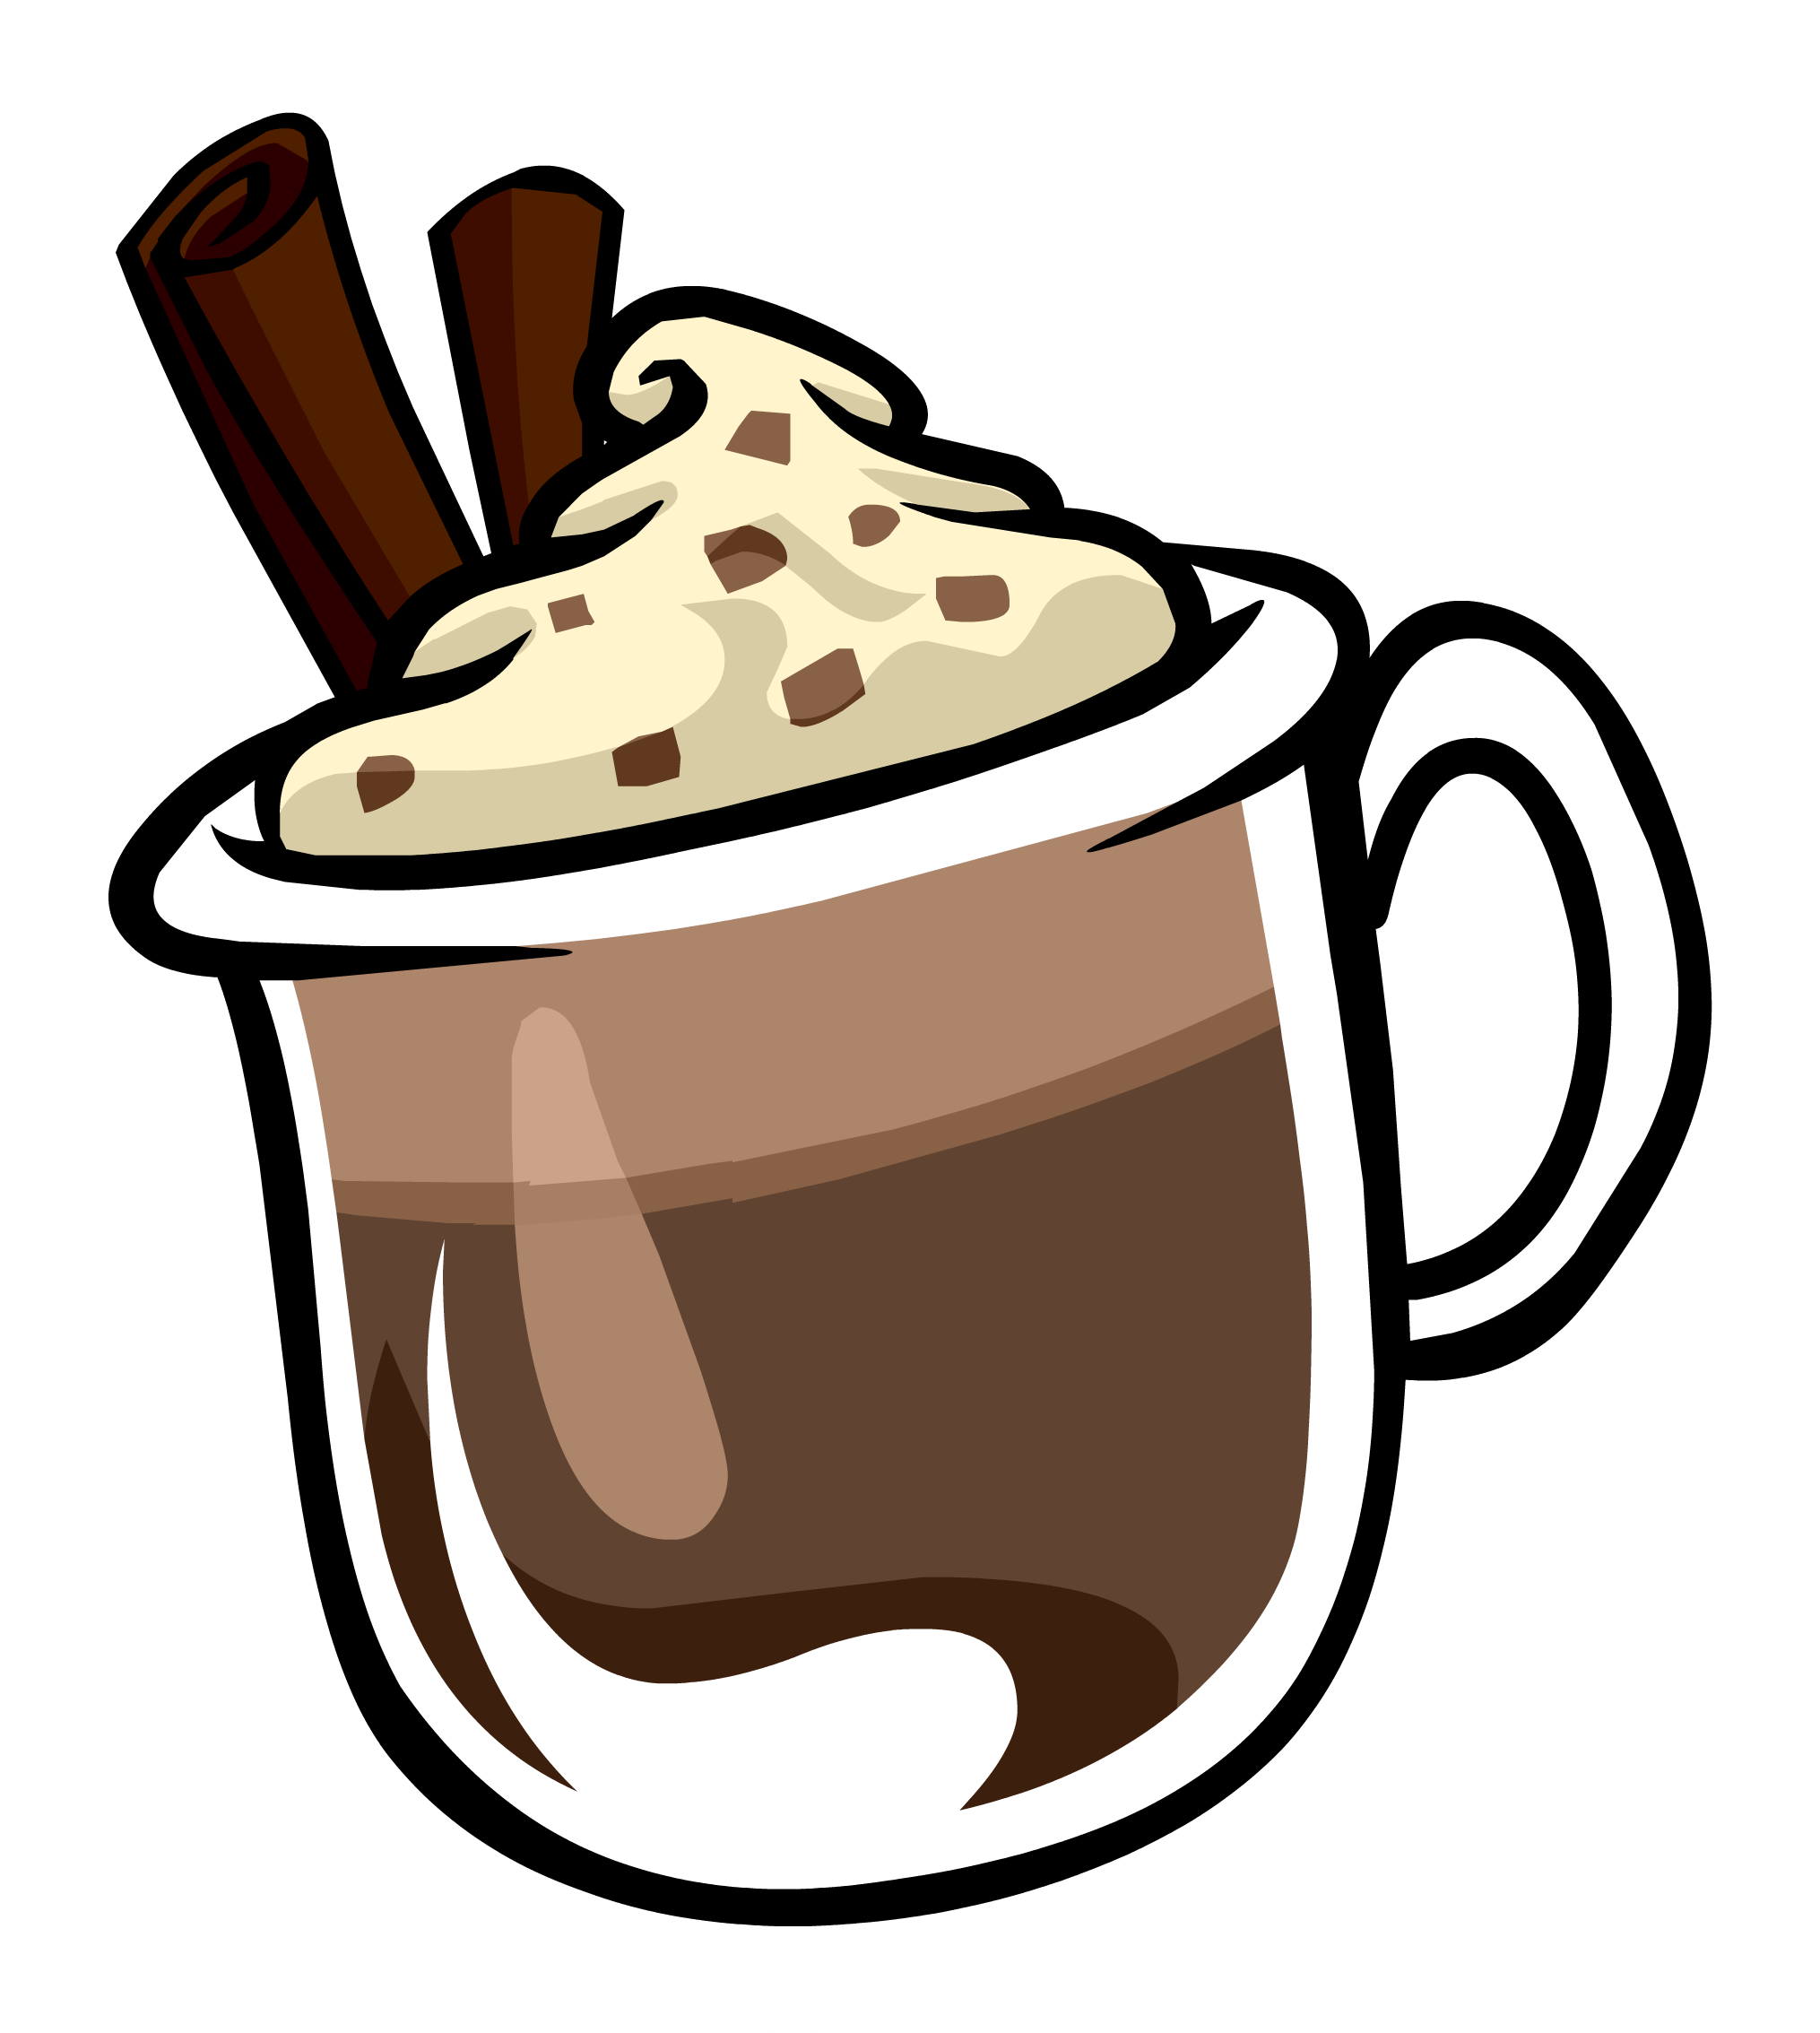 Hot chocolate with marshmallows clip art.